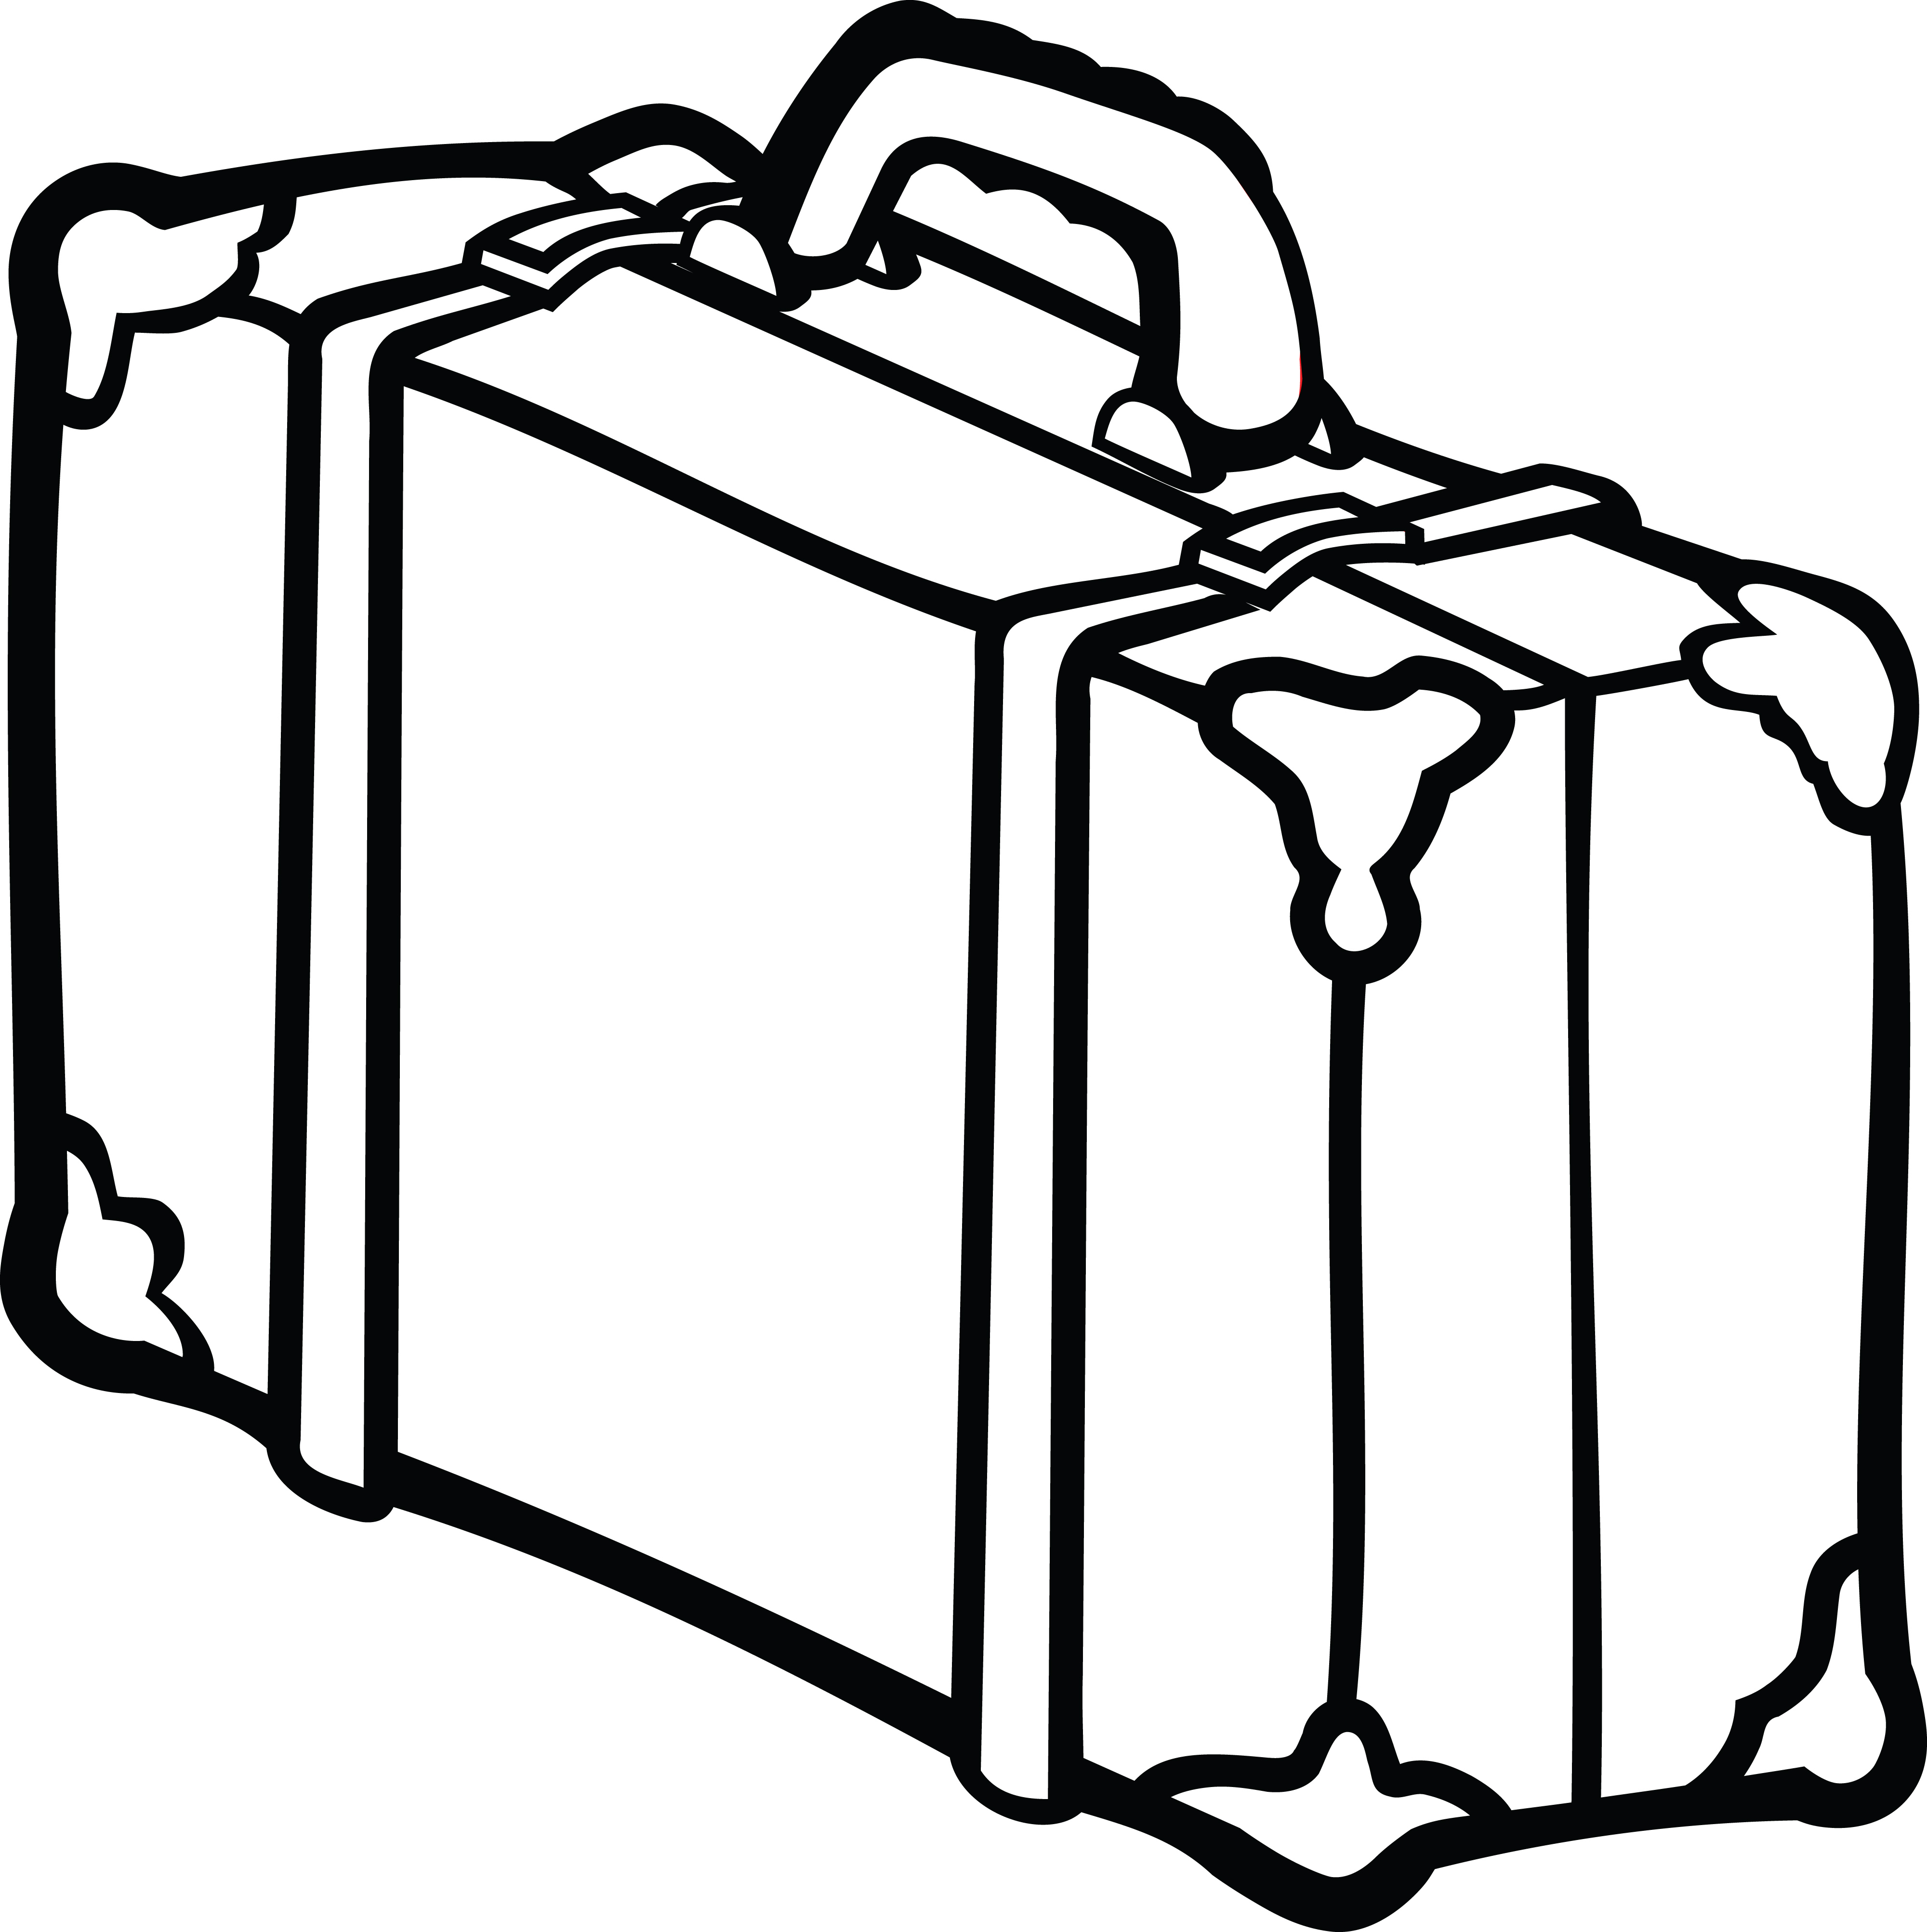 free clipart of a suitcase rh free clipartof com suitcase clipart blue suitcase clip art black and white